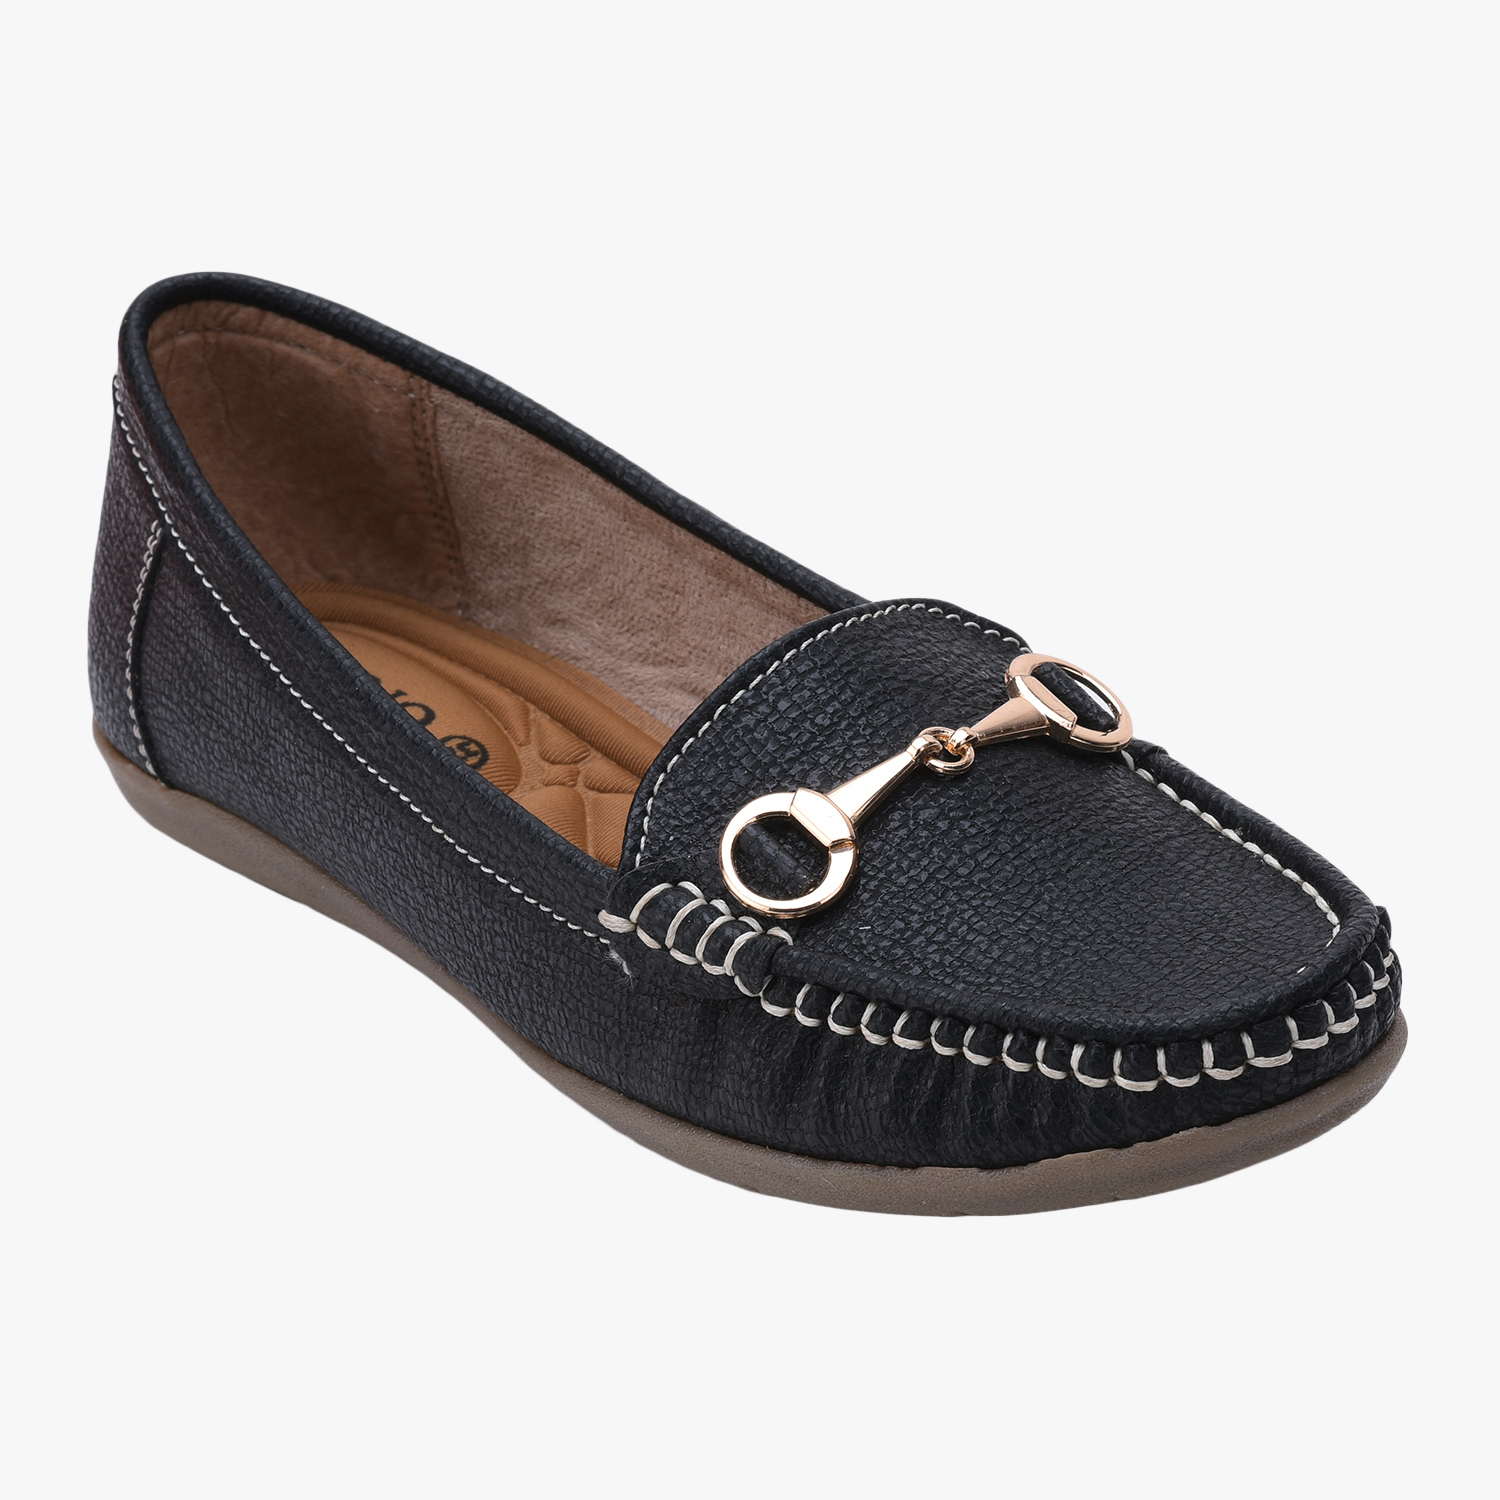 SALARIO | Salario Panelled Loafers with Contrast Stitch